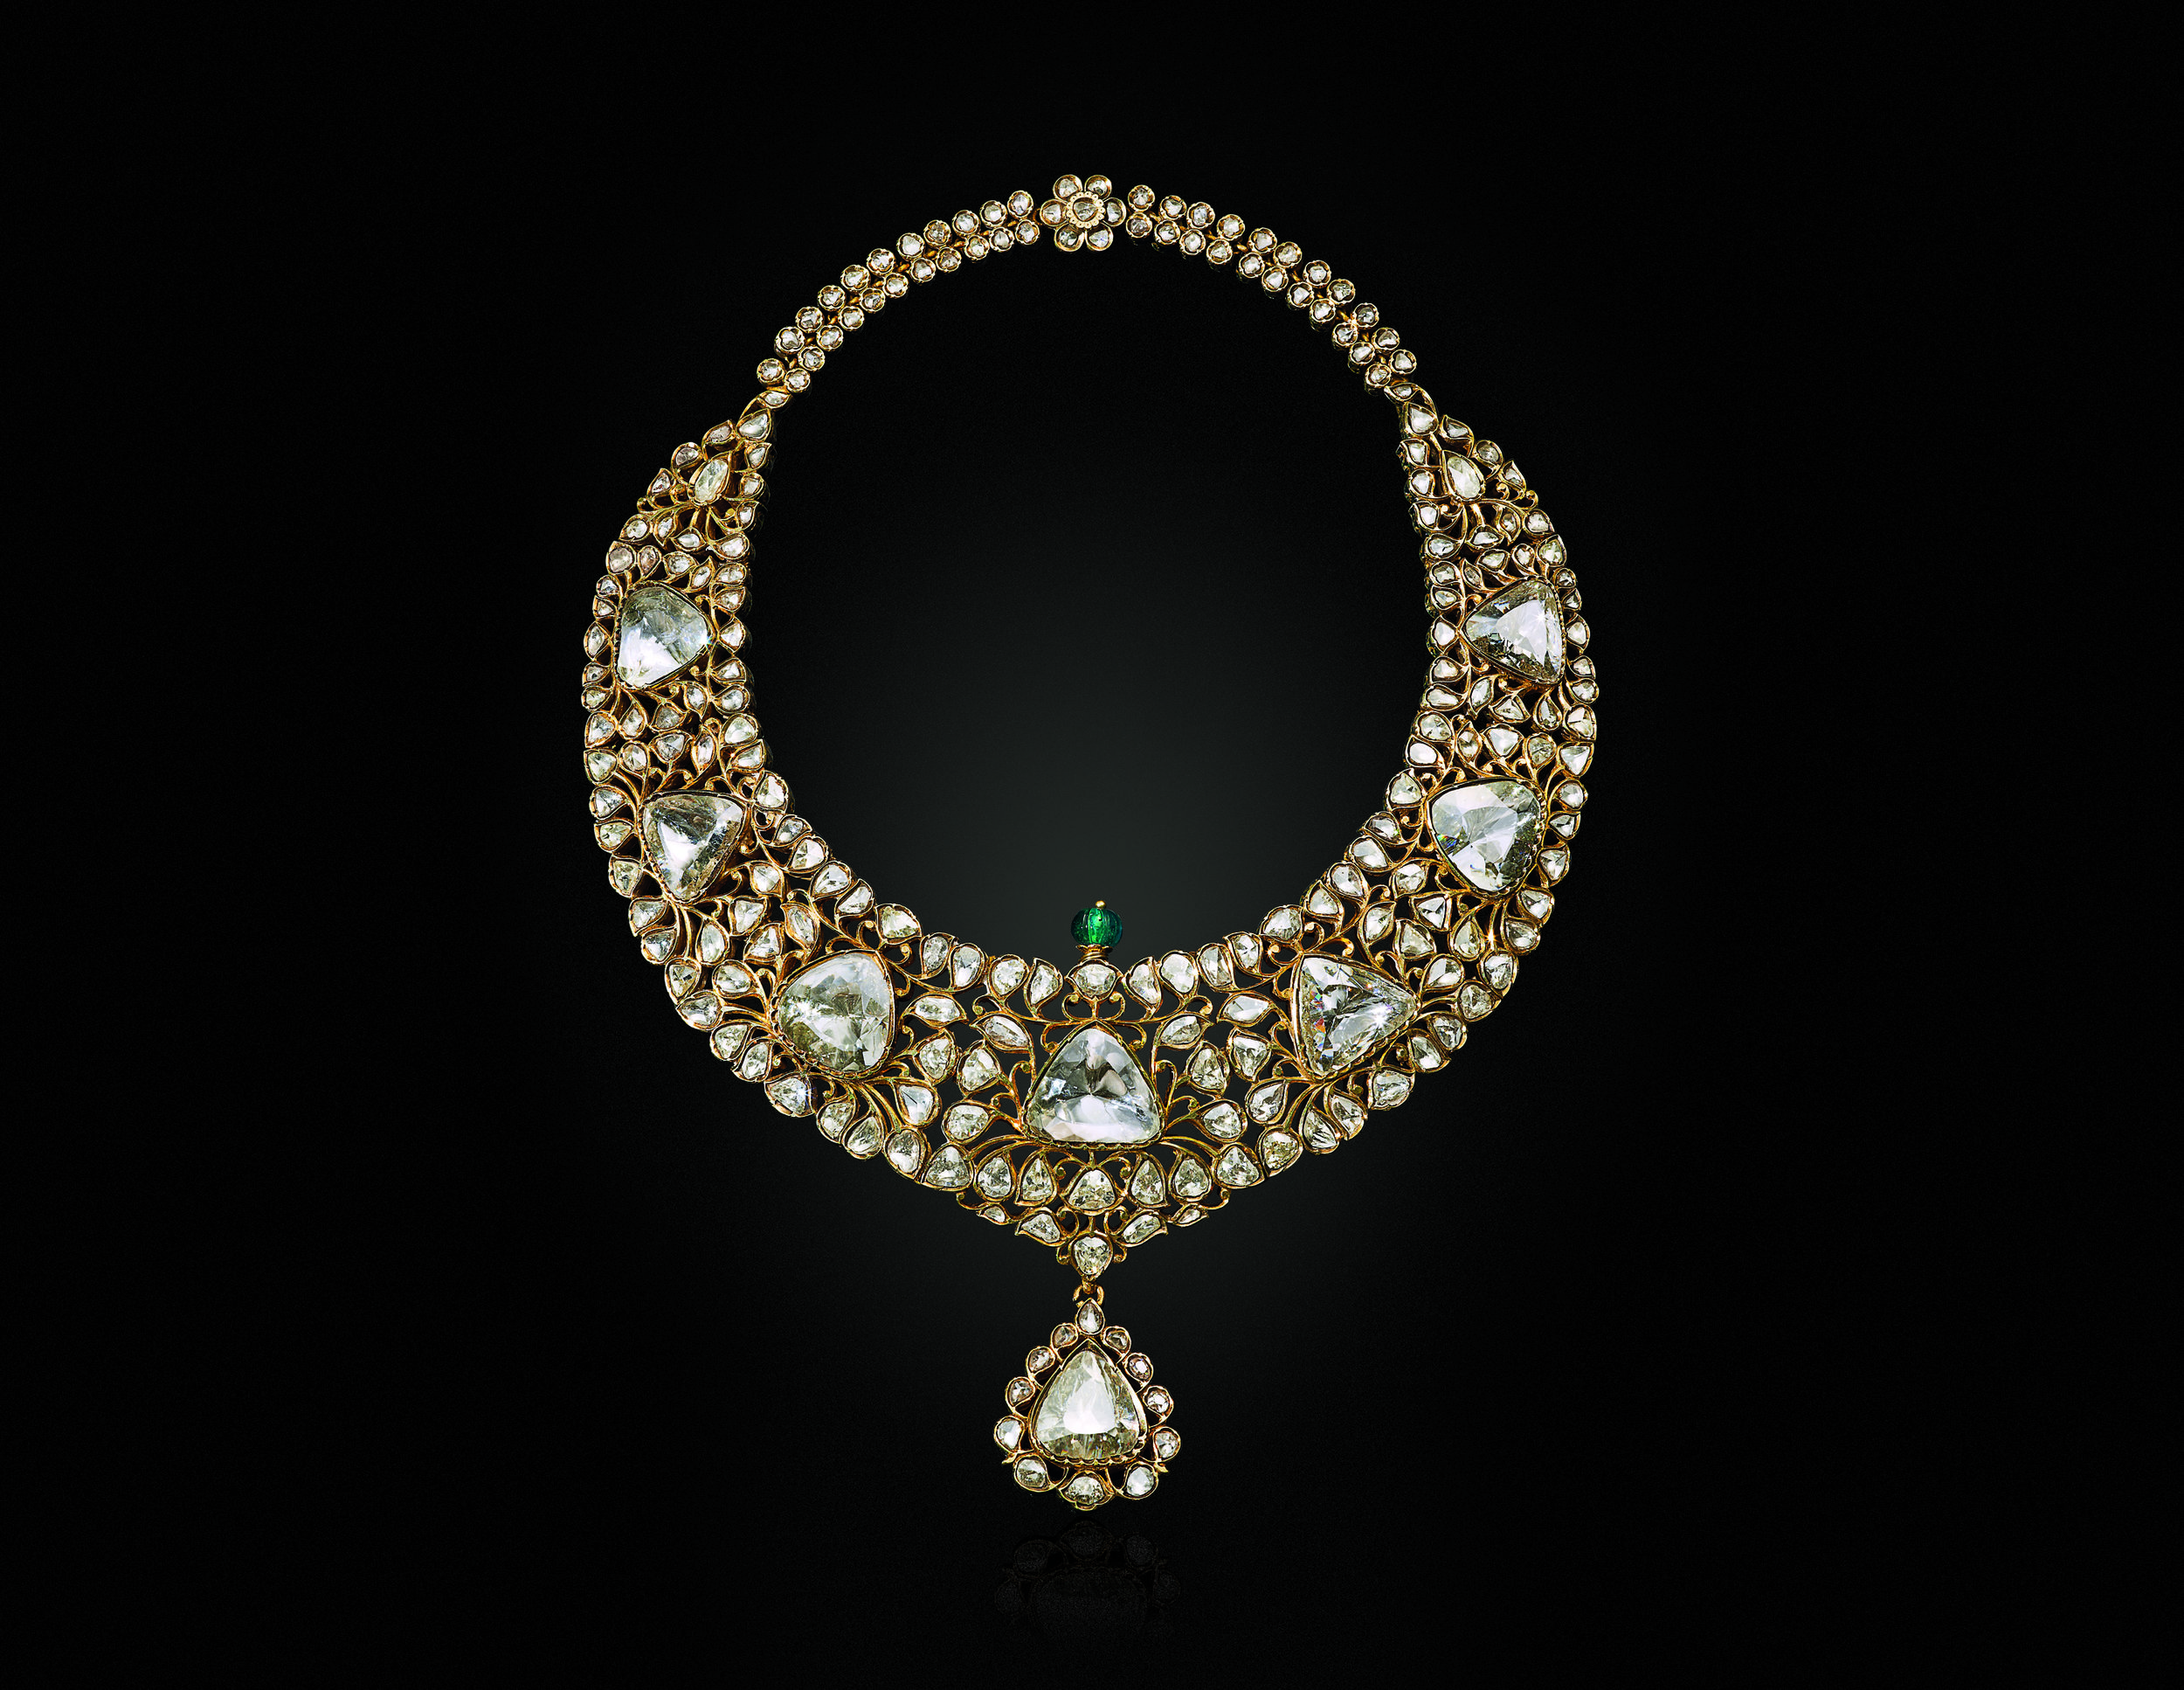 The Nizam of Hyderabad Necklace. Diamond, emerald and enamel necklace. The eight modified triangular-shaped table-cut golconda diamonds, variously-shaped faceted and rose-cut diamonds, carved emerald bead, green enamel, foil, gold, engraved on the reverse with foliate motif, 16 in, late 19th century. The modified brilliant-cut of these diamonds reflect the advancement of gem faceting in India. Additionally, the openwork setting and symmetrical nature of the necklace's design is the direct result of Western influence. Image: Christie's